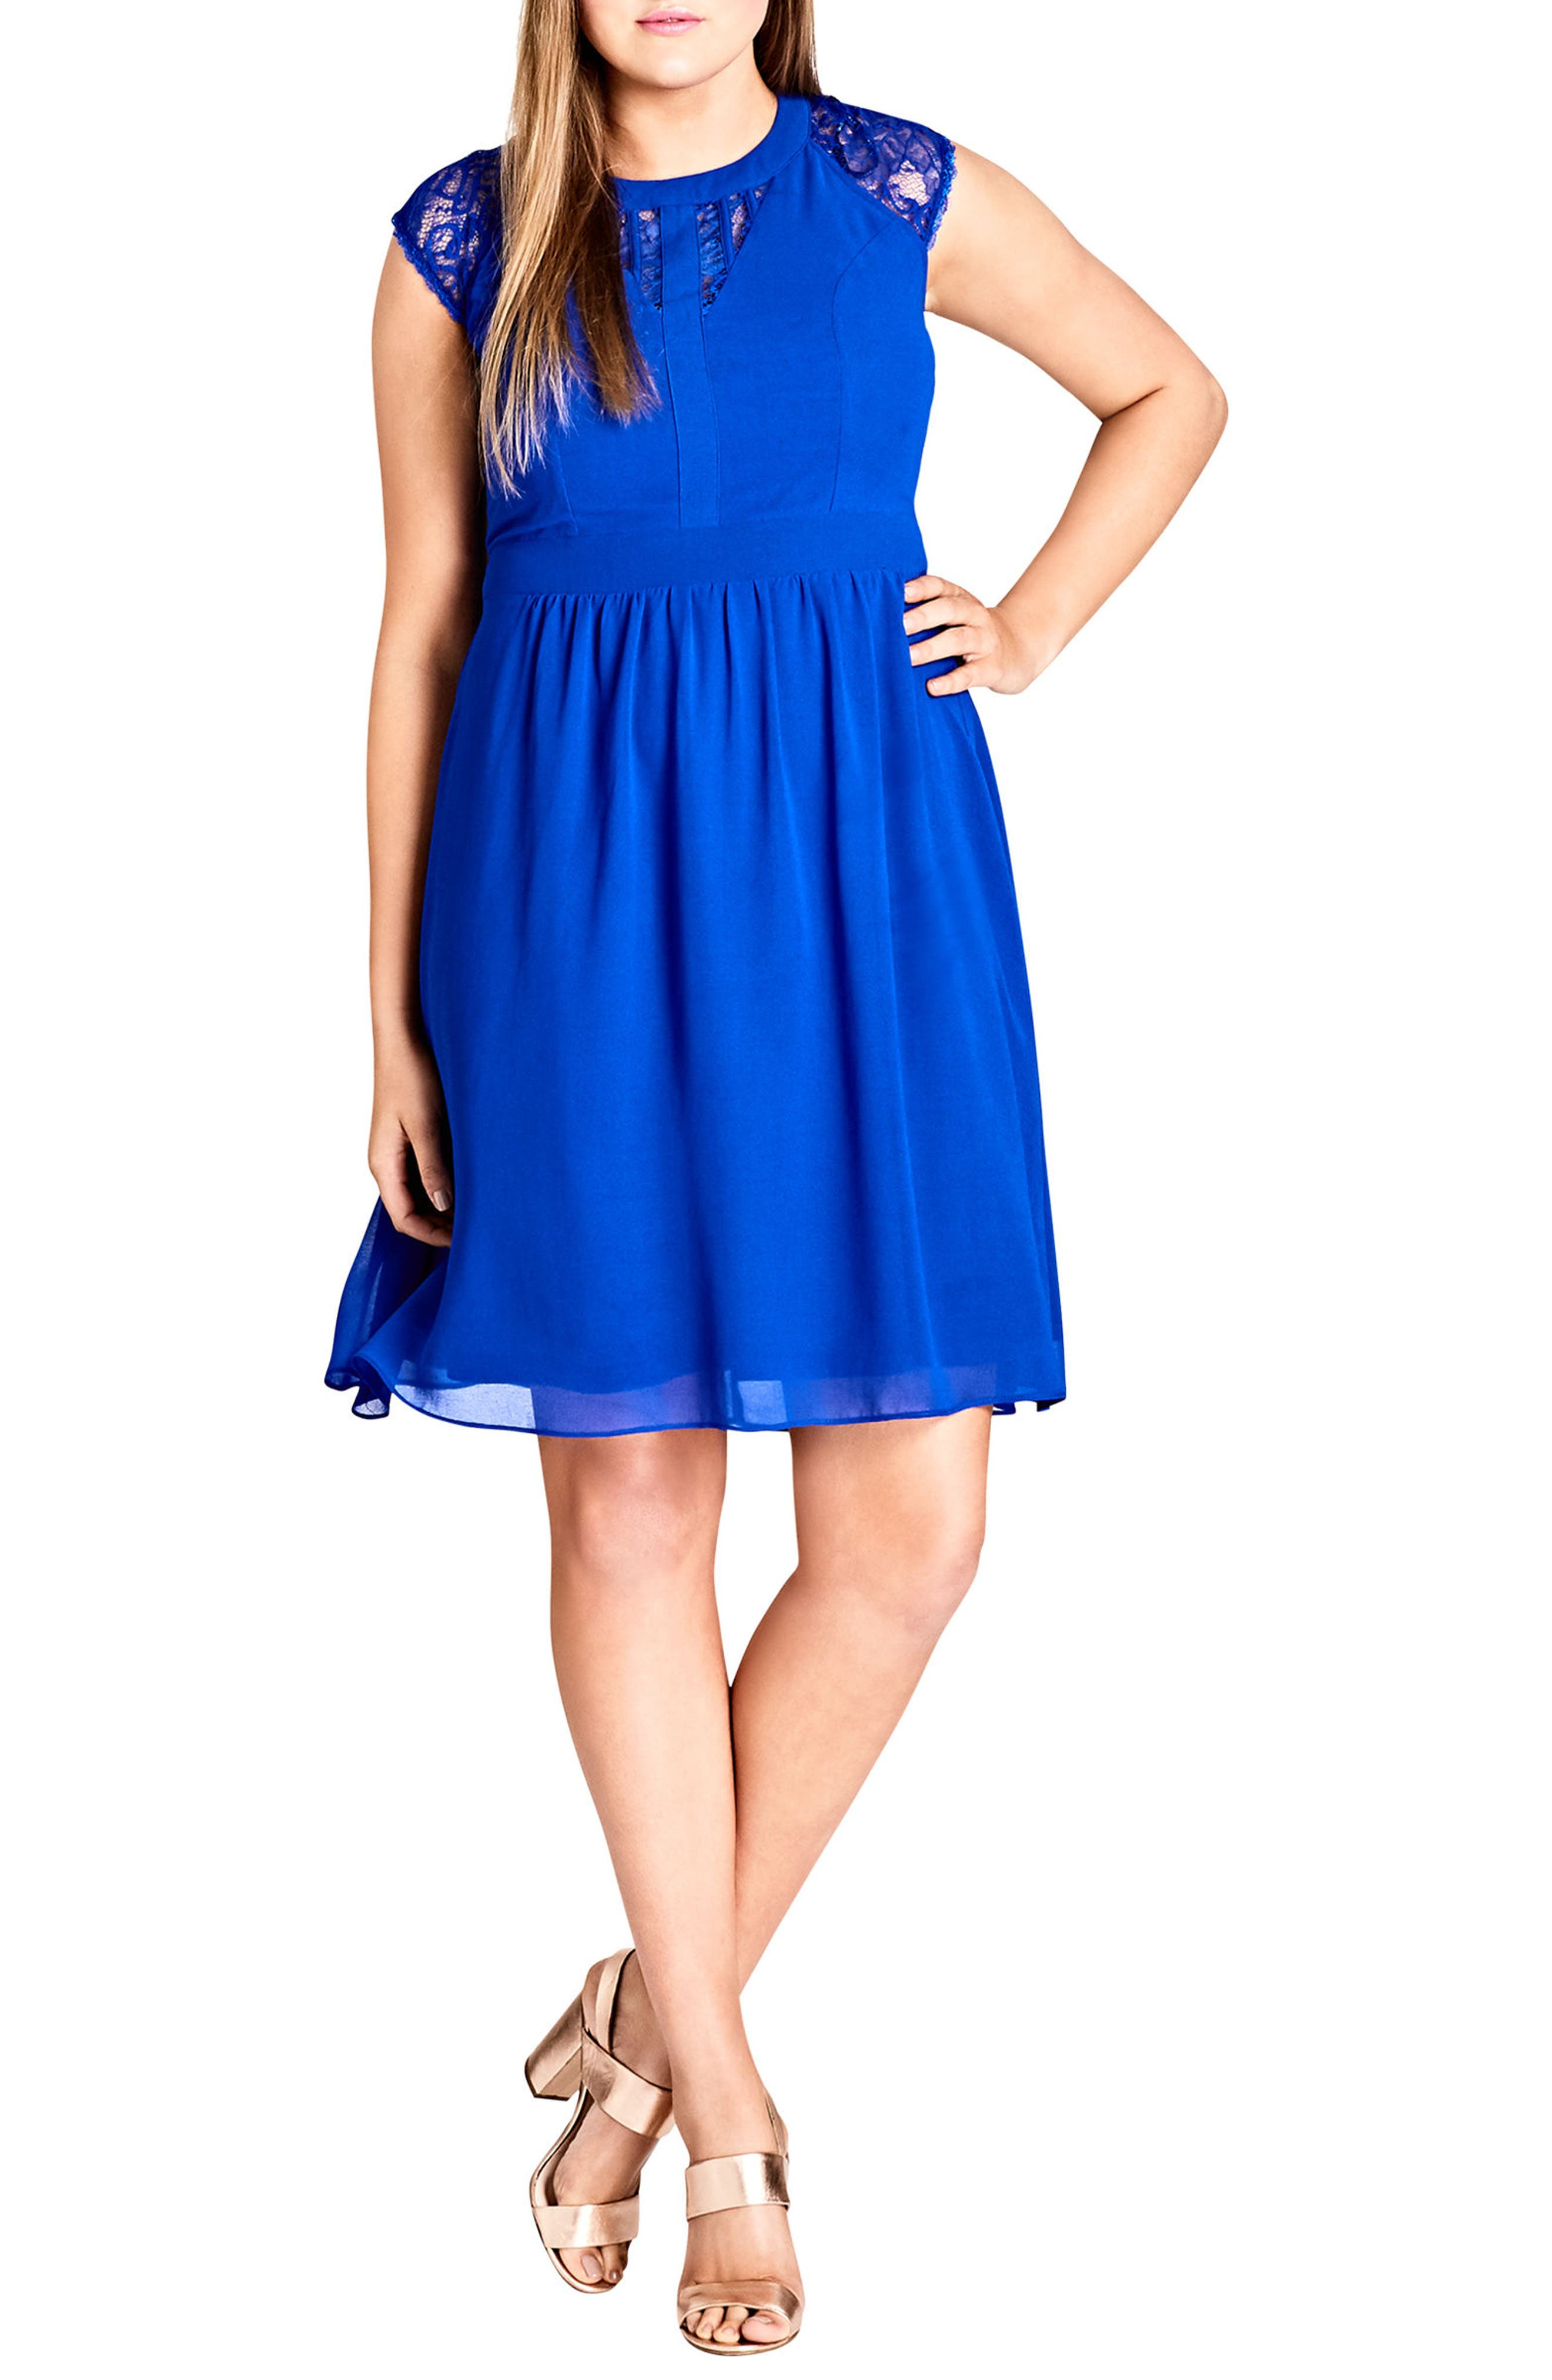 Alternate Image 1 Selected - City Chic Lace Inset Fit & Flare Dress (Plus Size)